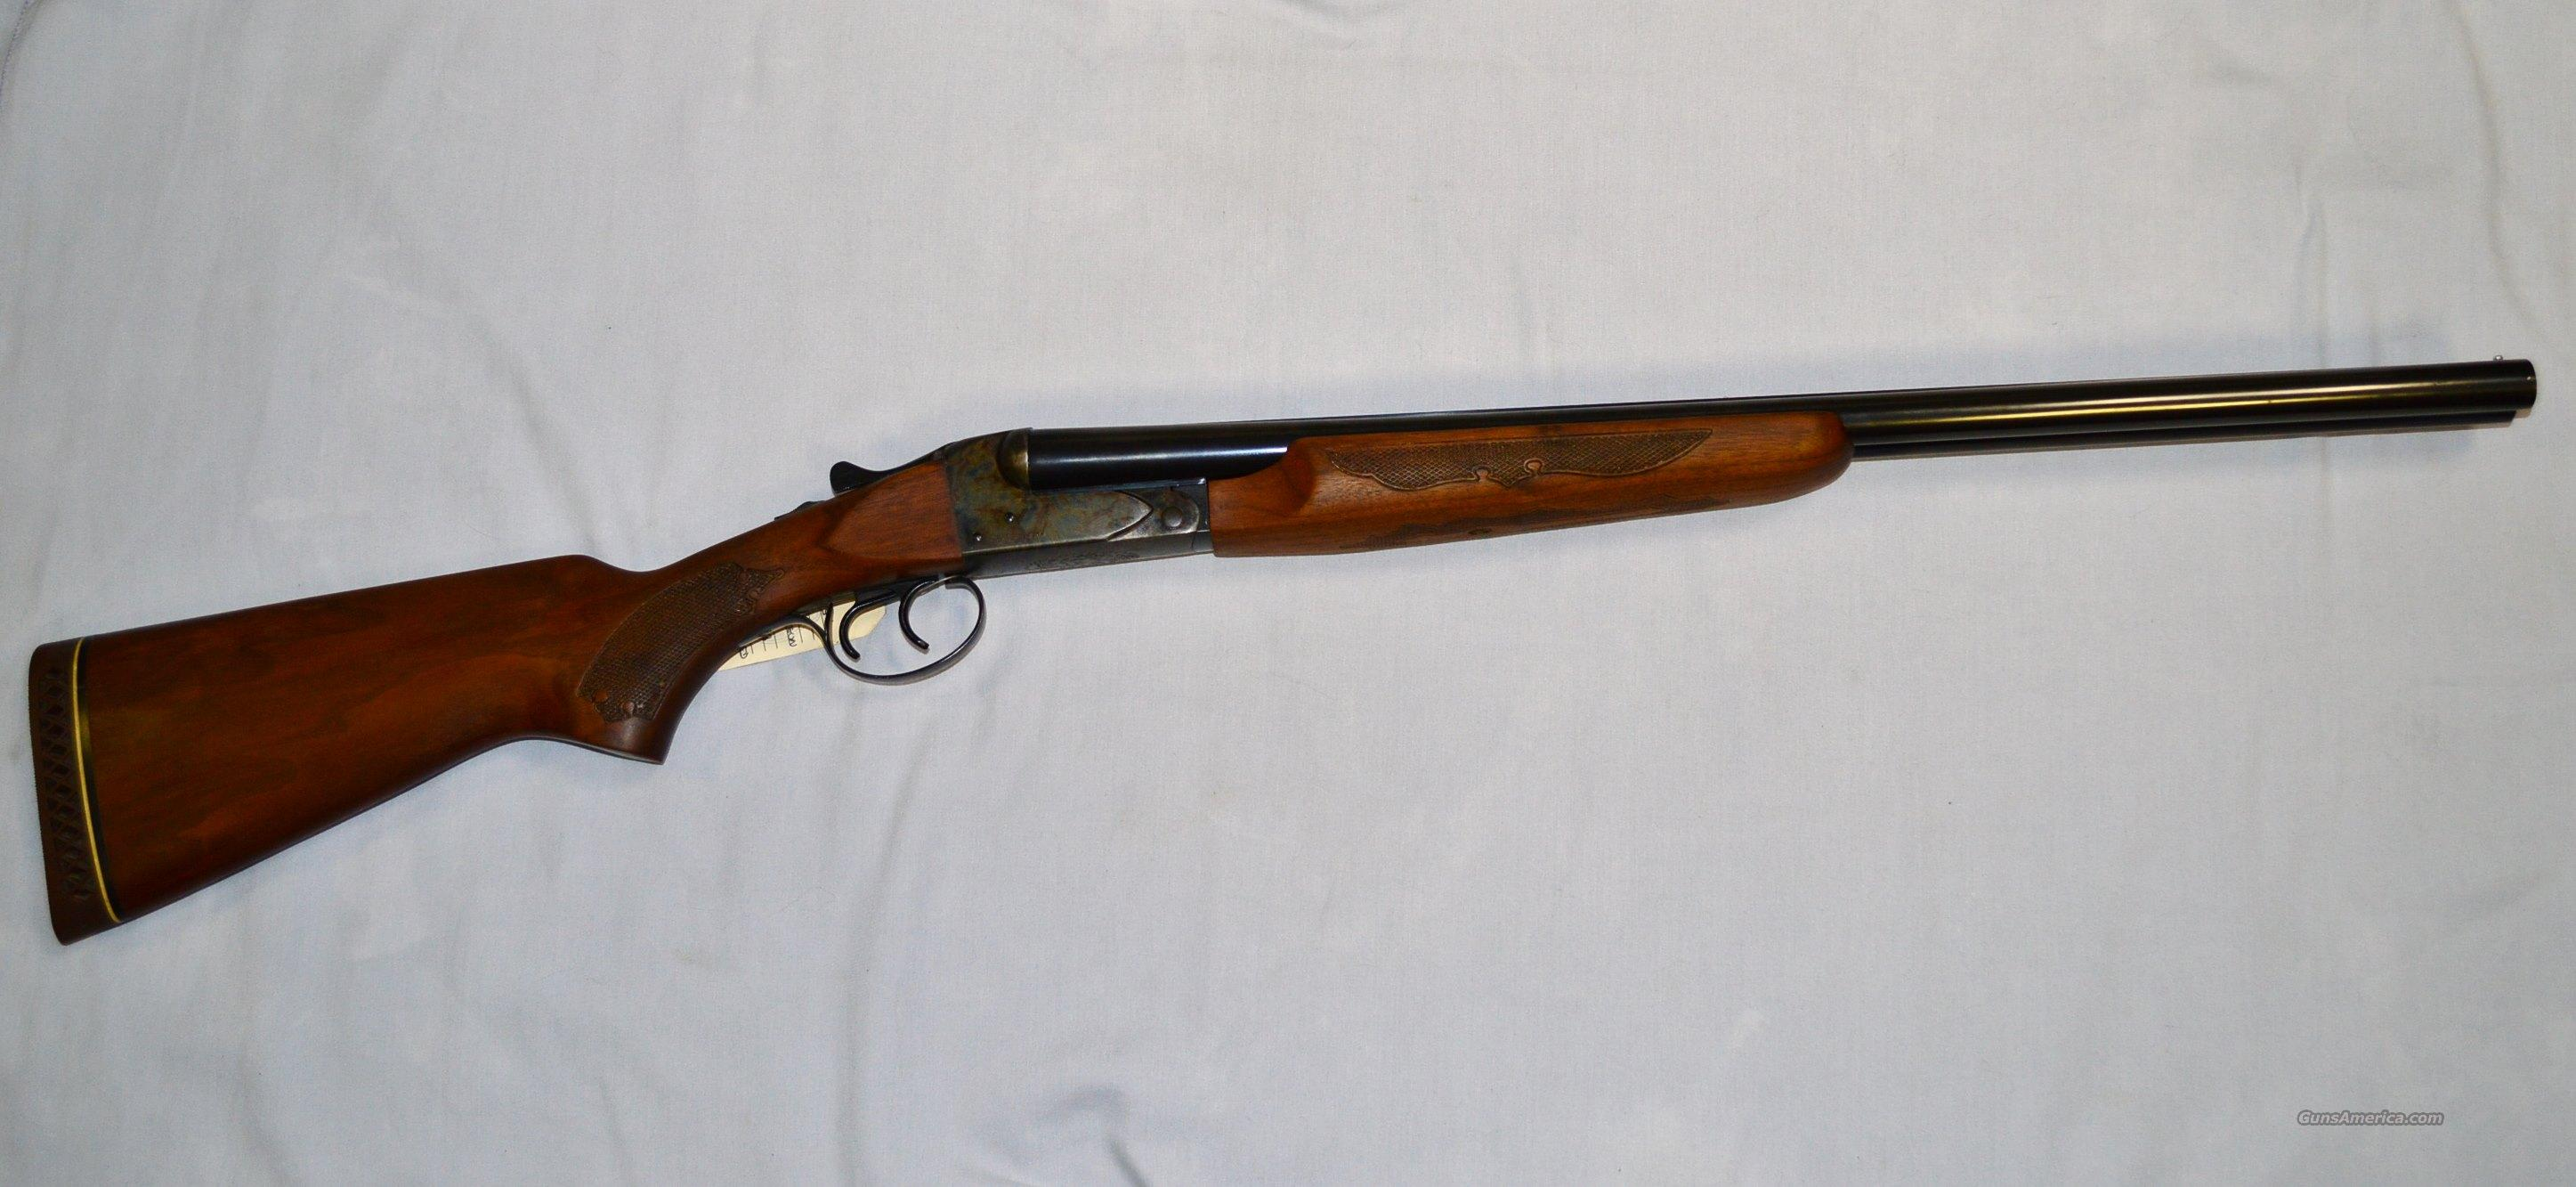 Savage Arms 22lr Lever Action